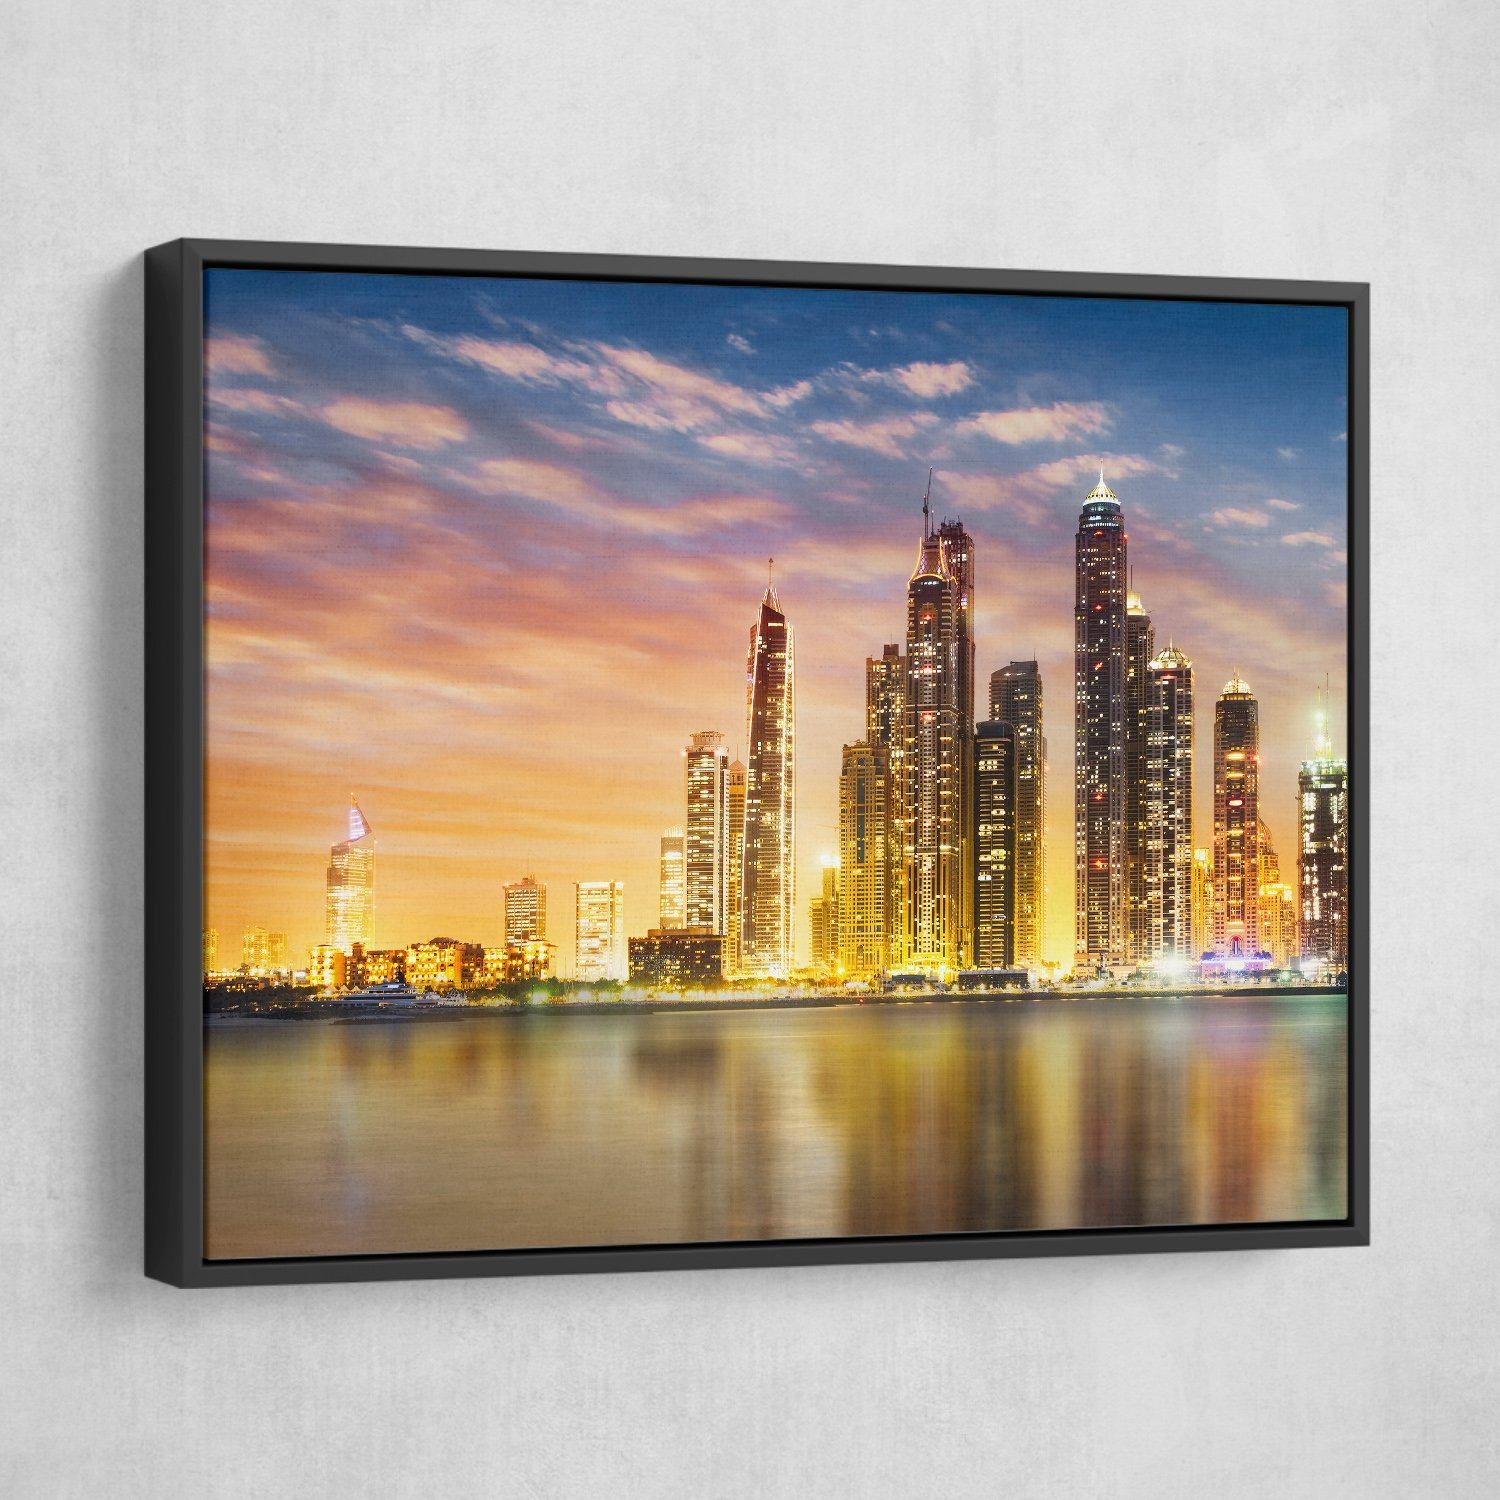 Dubai Marina Skyline wall art black frame